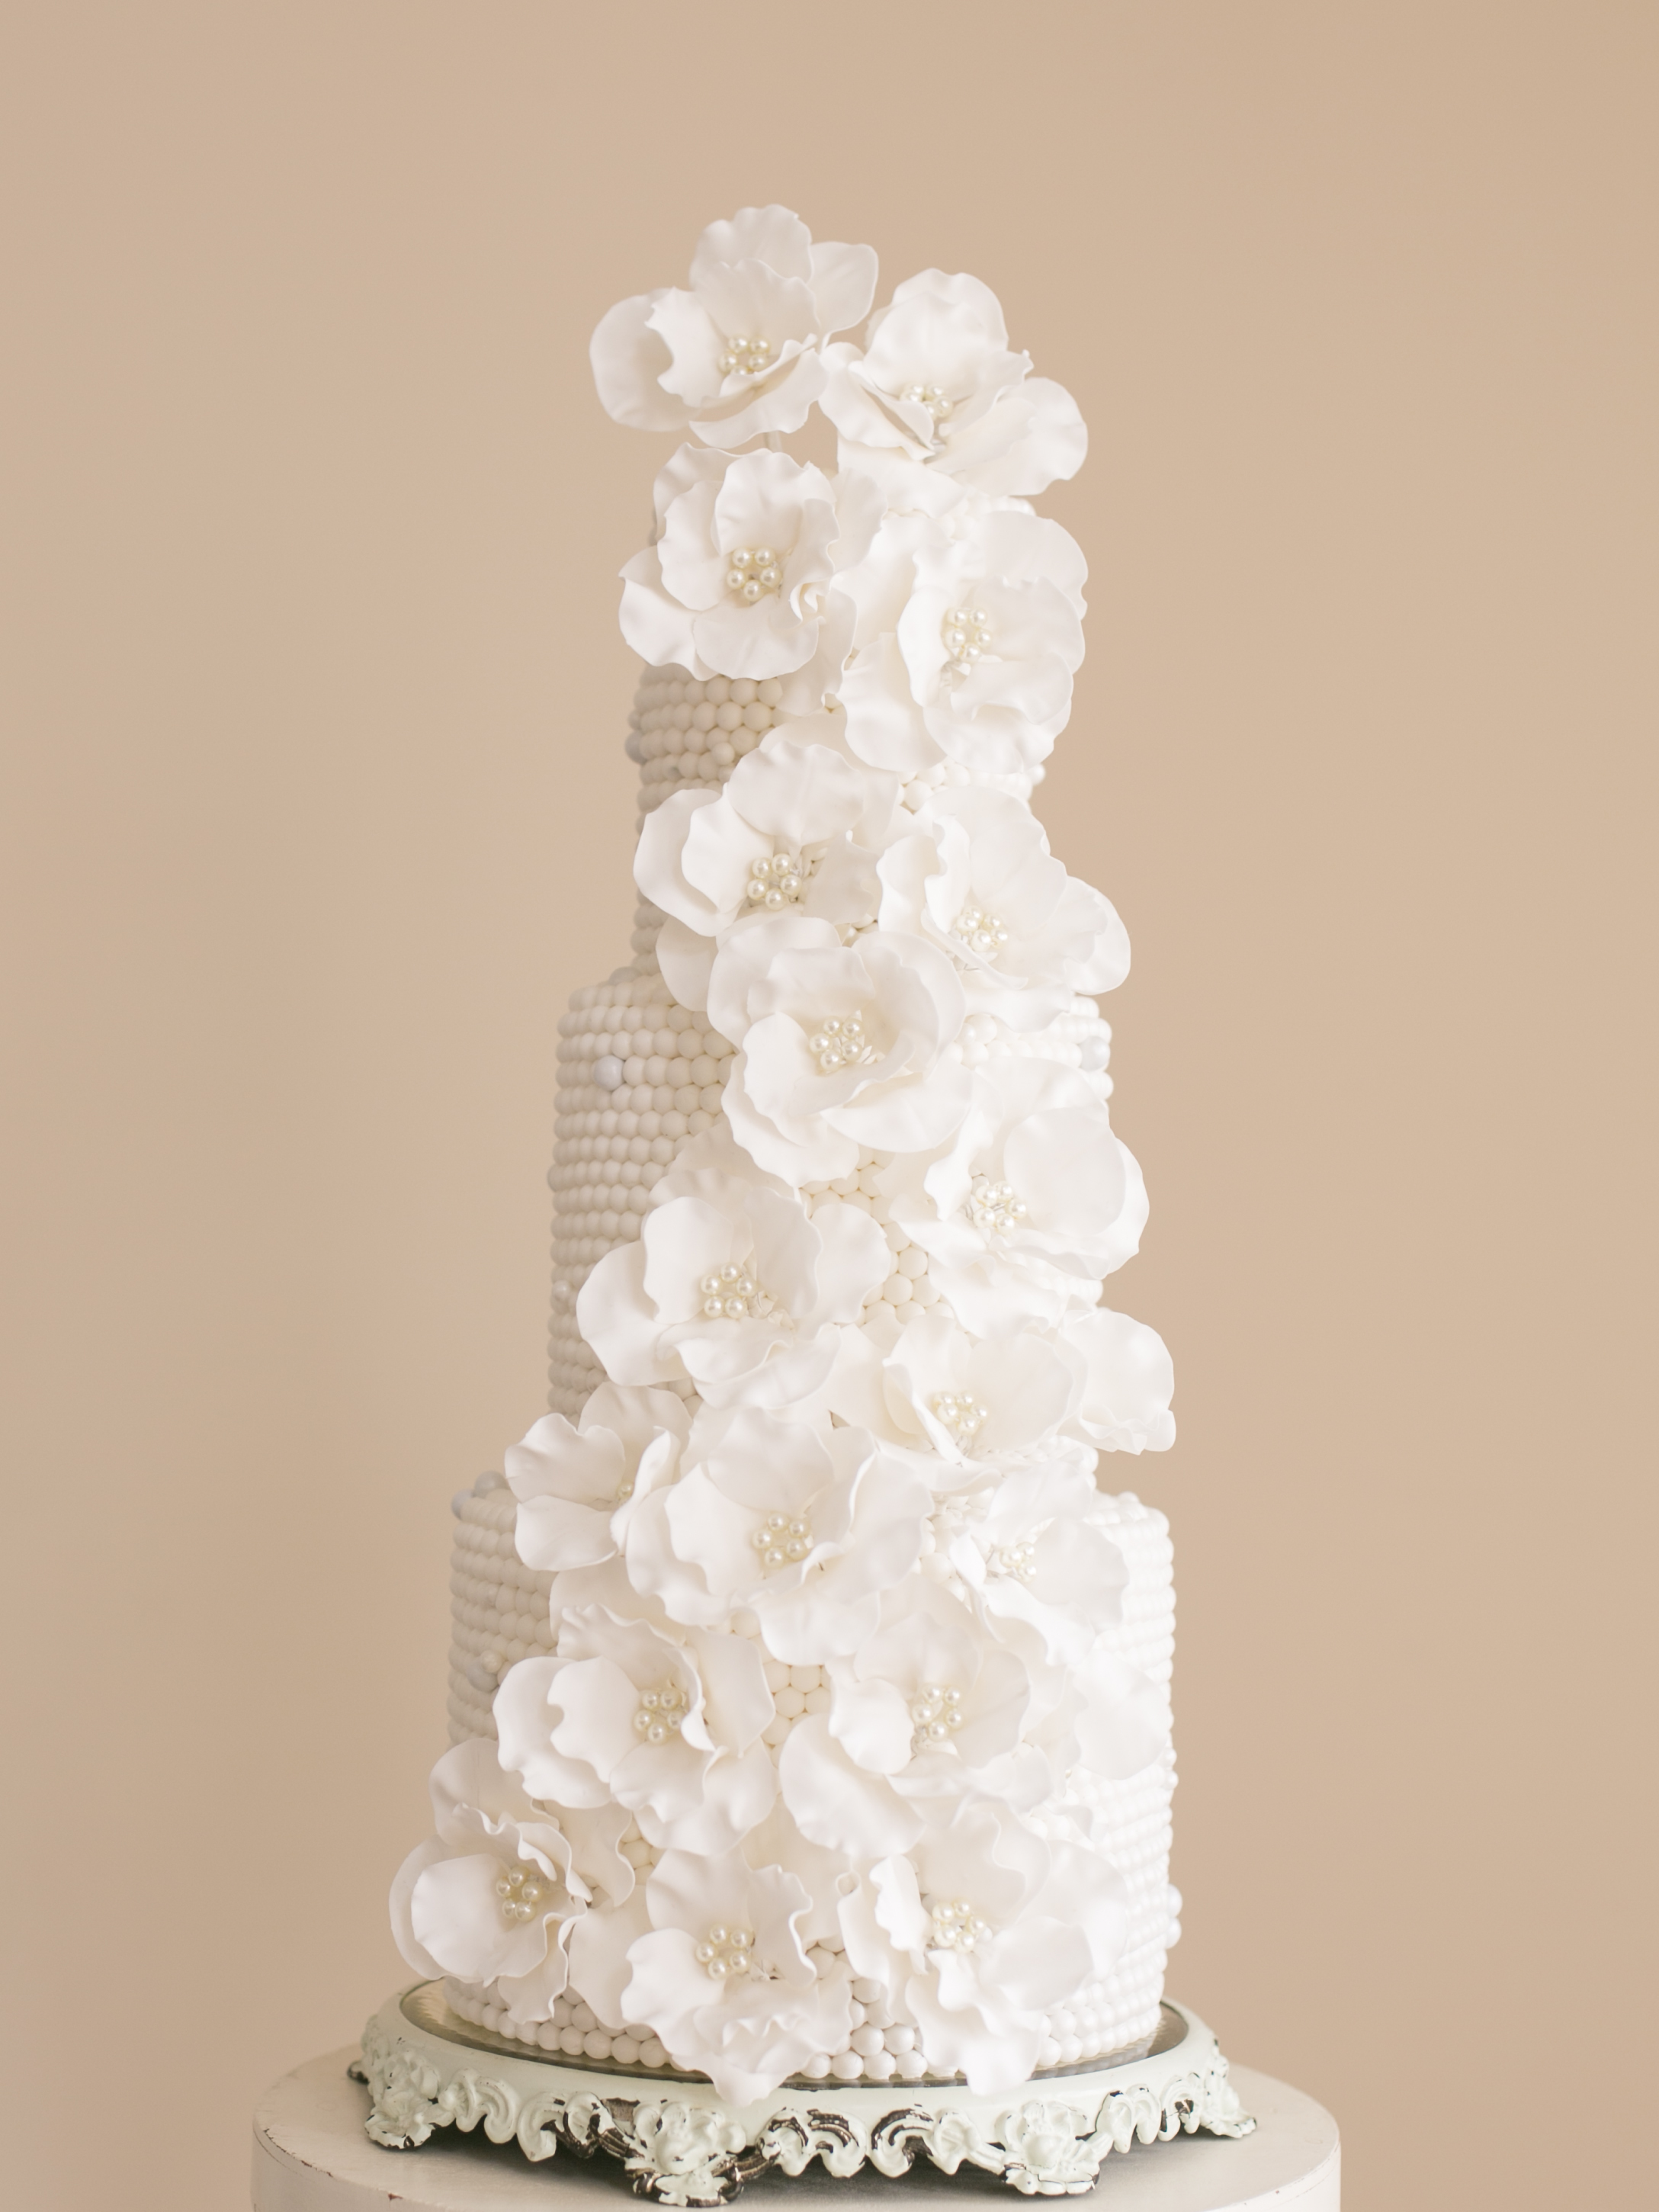 White wedding with pearls and all white sugar flowers